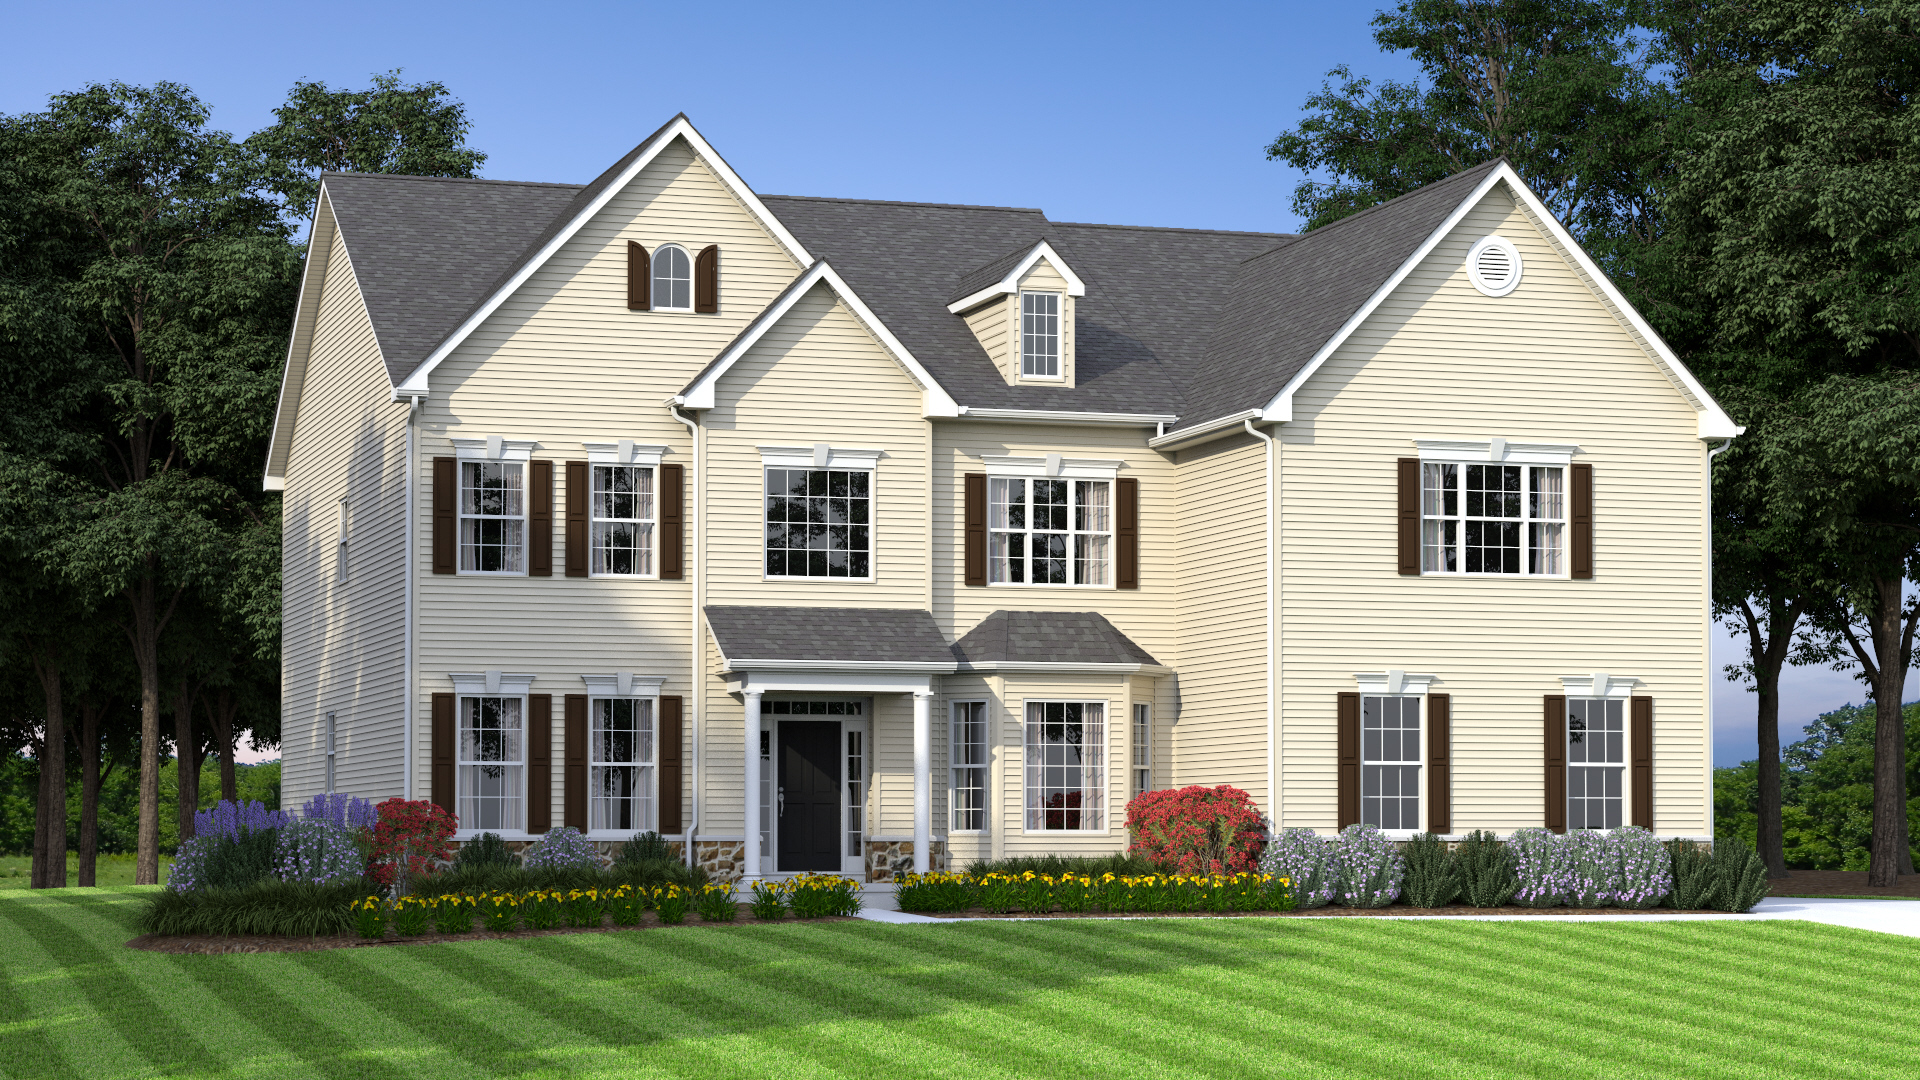 The Philadelphian  4,500 sf / 4 br / 3.5 ba / 2 car garage Starting at $416,990